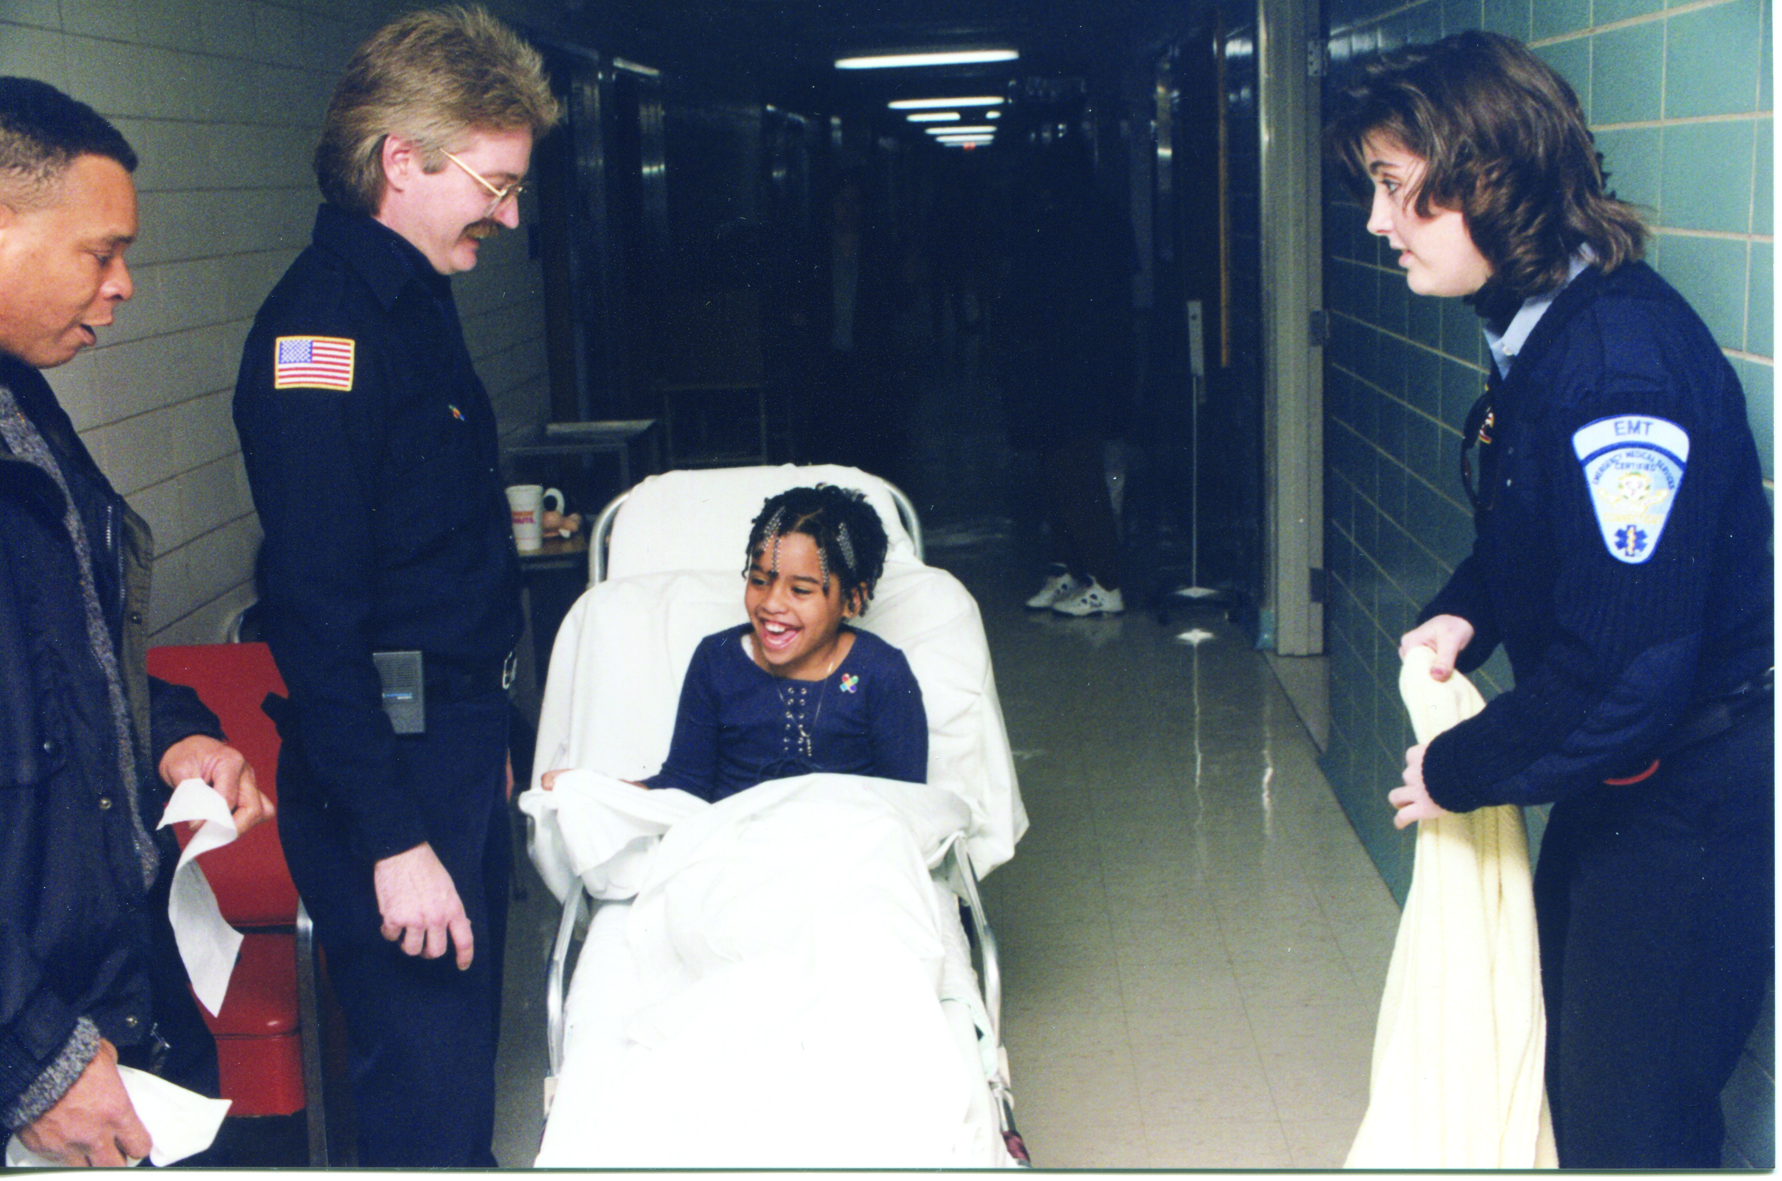 Young child on hospital stretcher with her father and two EMTs, who help transport her to Connecticut Children's